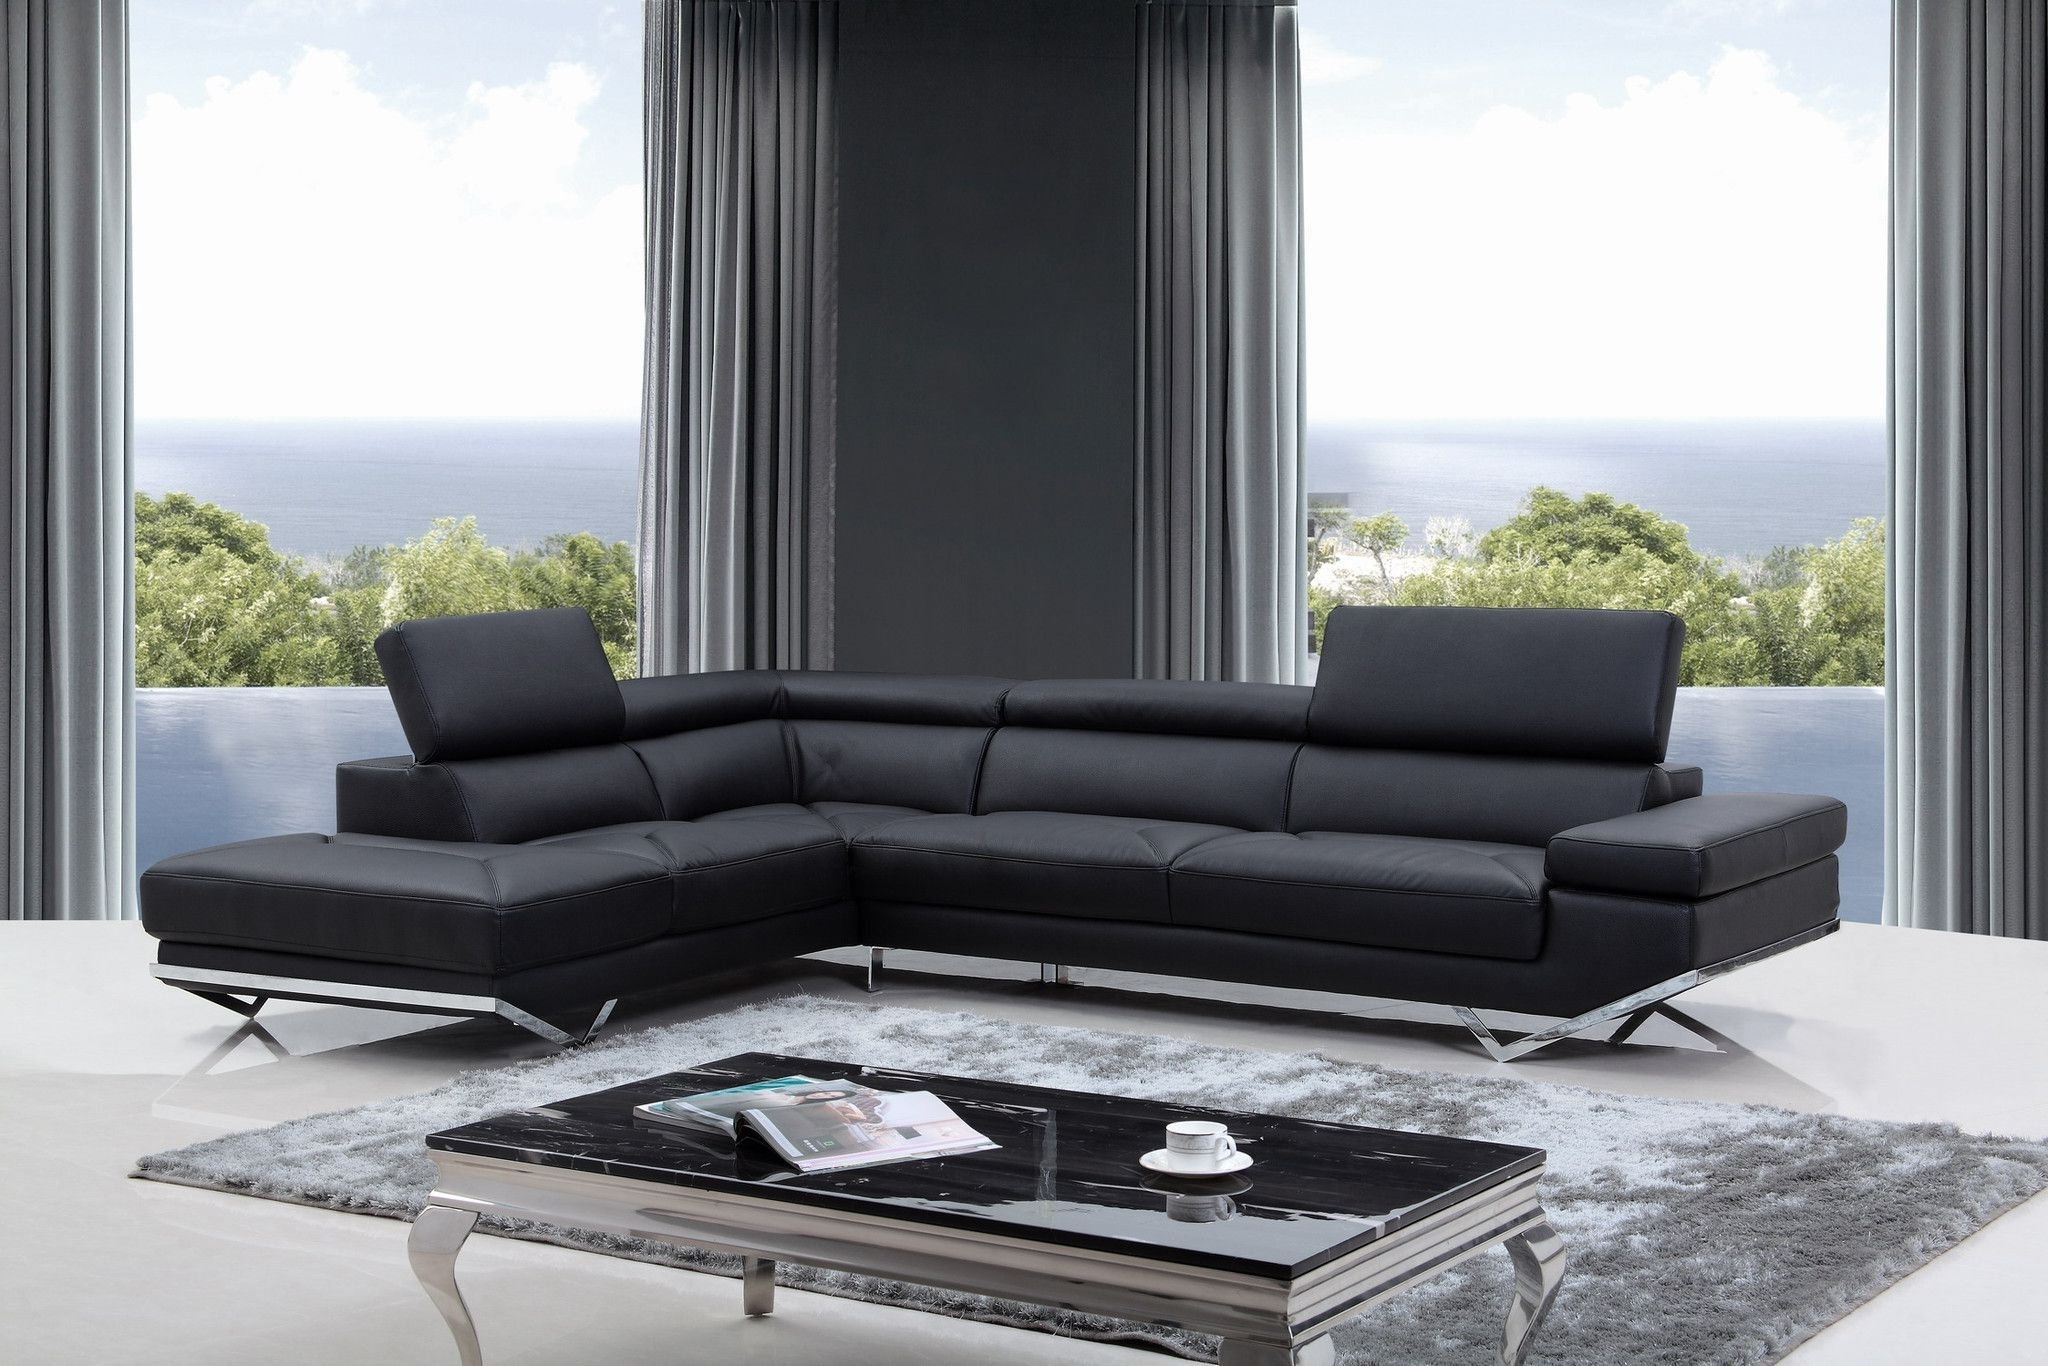 Most Popular Quebec Sectional Sofas Intended For Divani Casa Quebec Modern Black Eco Leather Sectional Sofa (View 7 of 20)